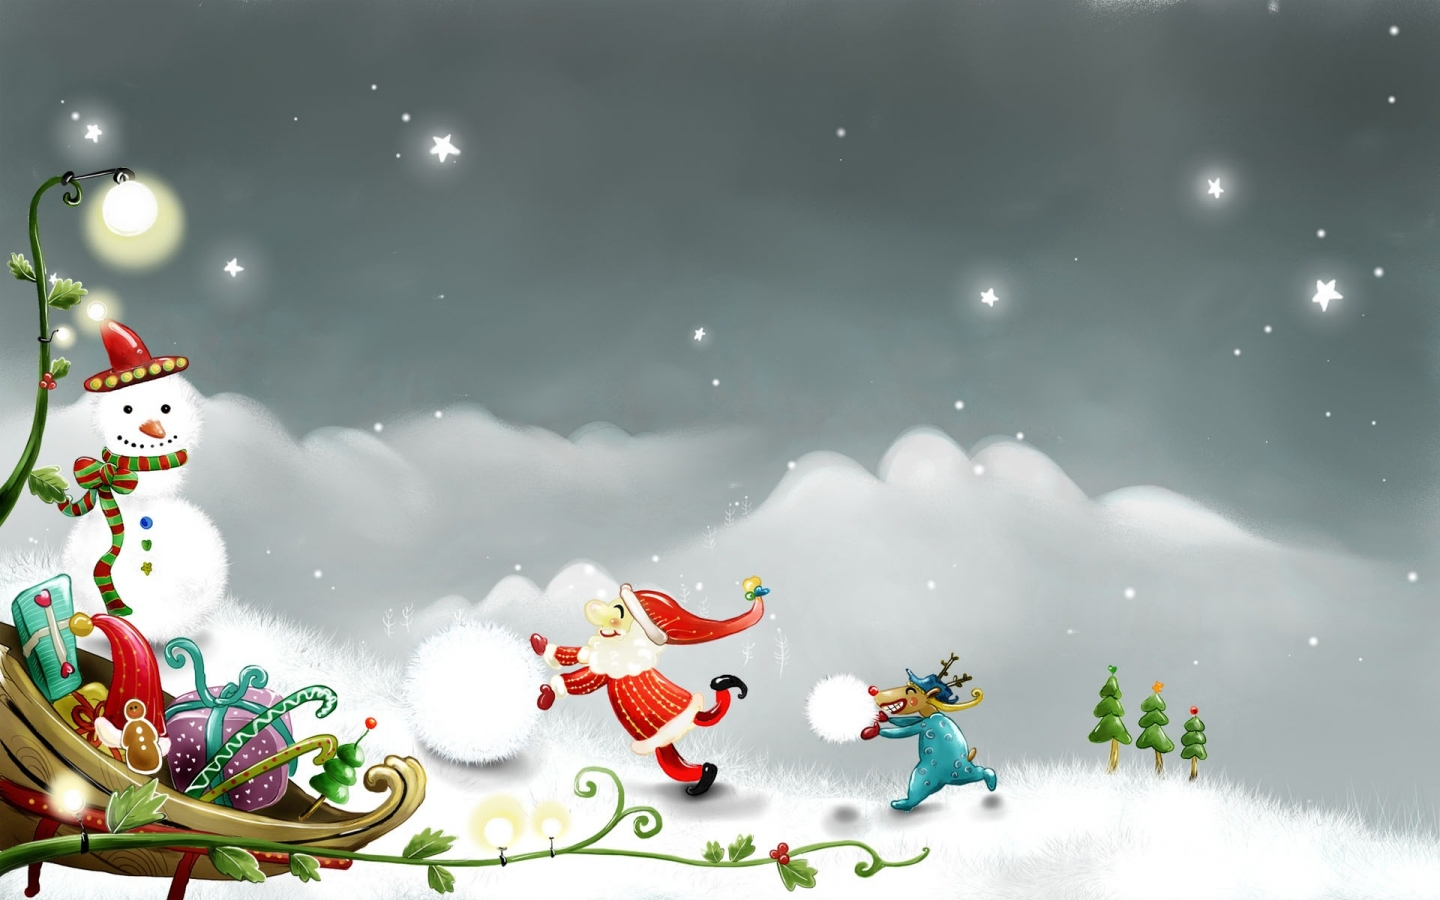 Snowman and Santa Claus for 1440 x 900 widescreen resolution